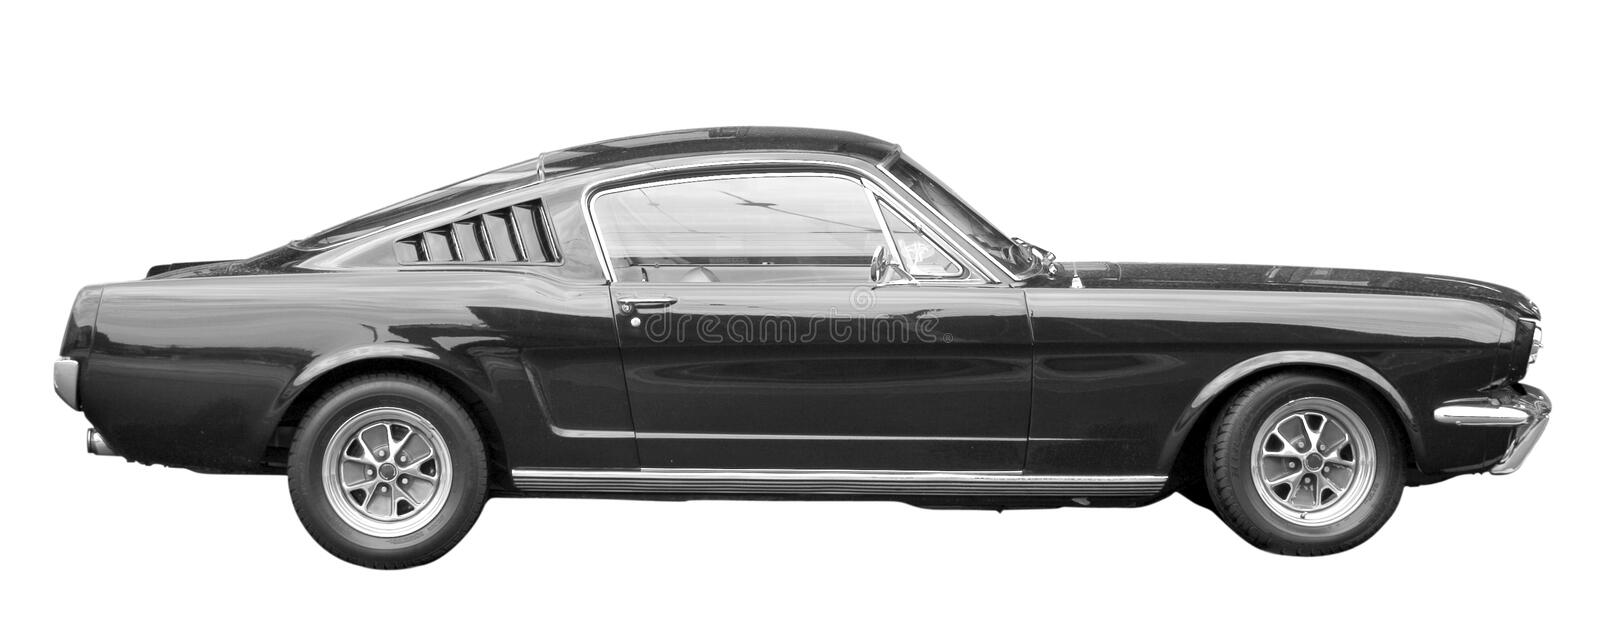 Classic Muscle Car stock photography